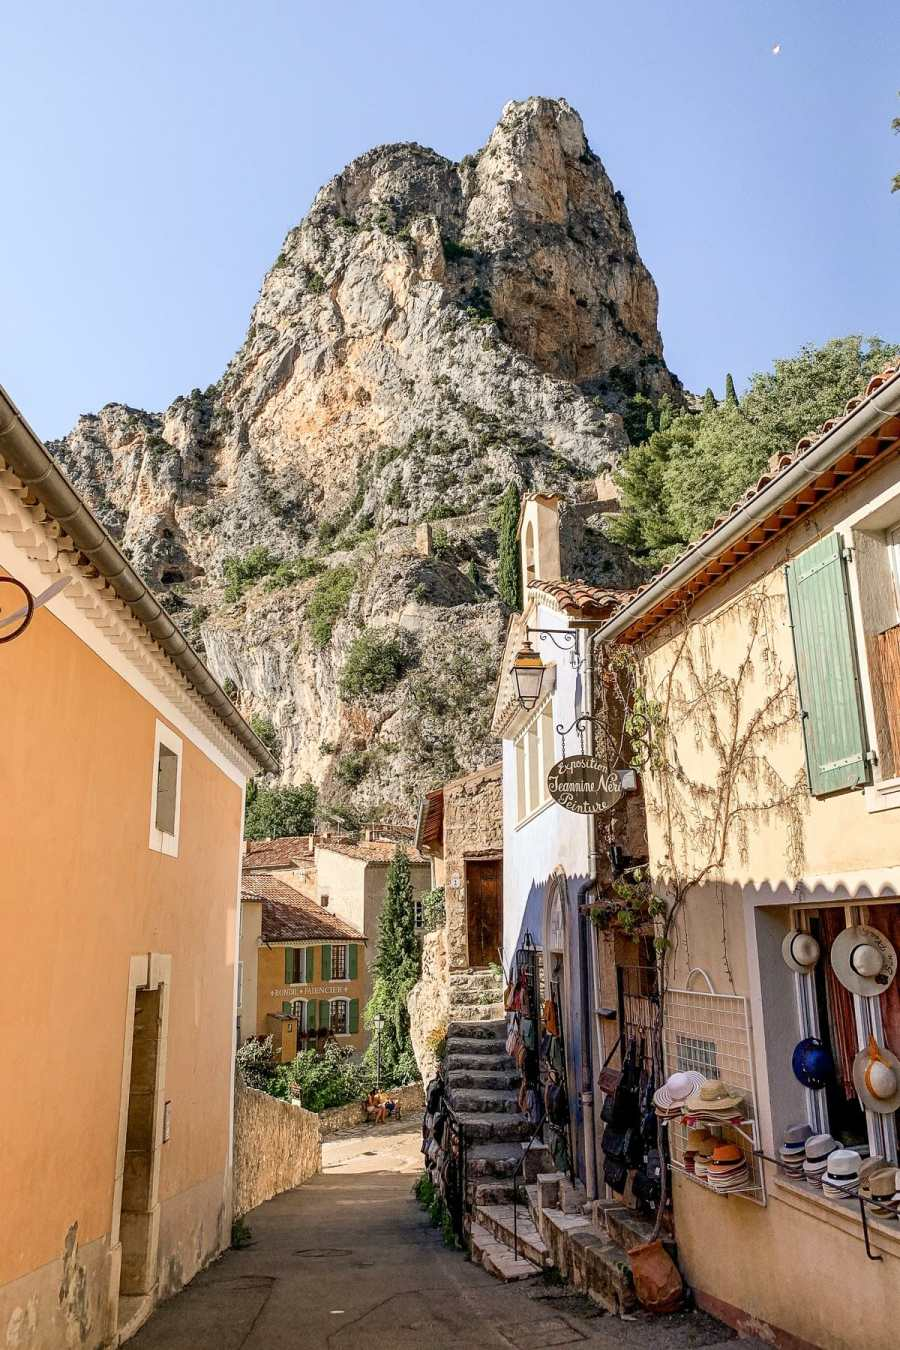 The charming town of Moustiers-Sainte-Marie in Provence